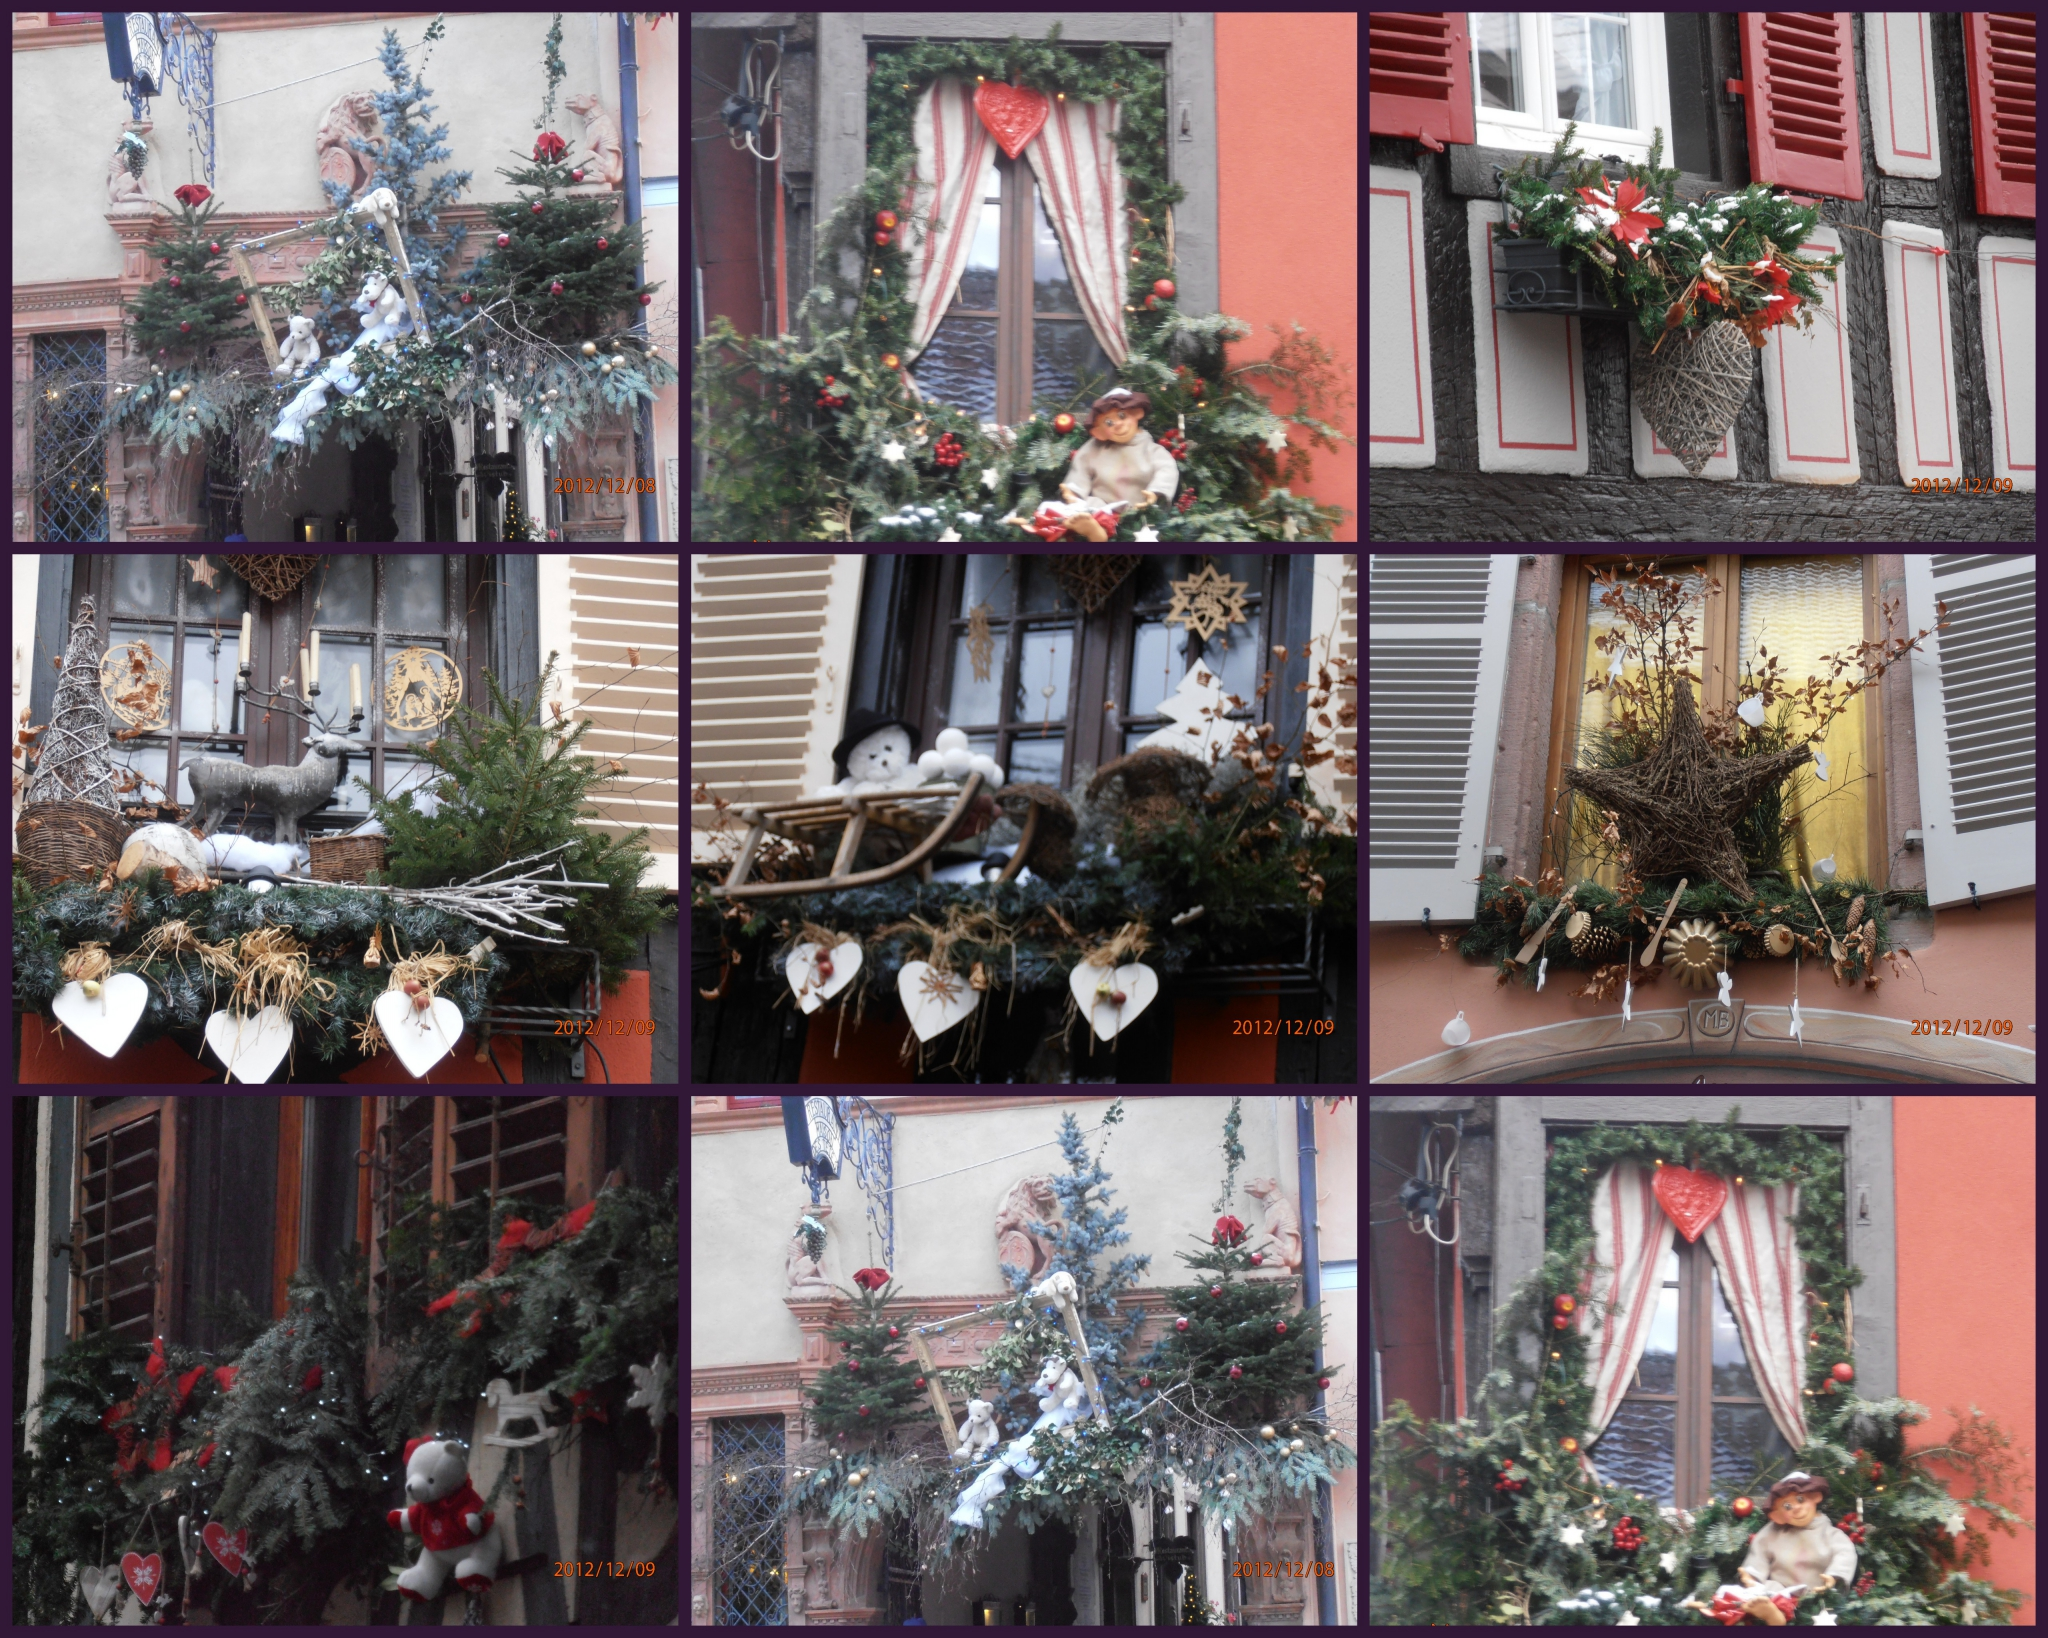 D co noel maison alsace exemples d 39 am nagements for Decoration de fenetre exterieur pour noel